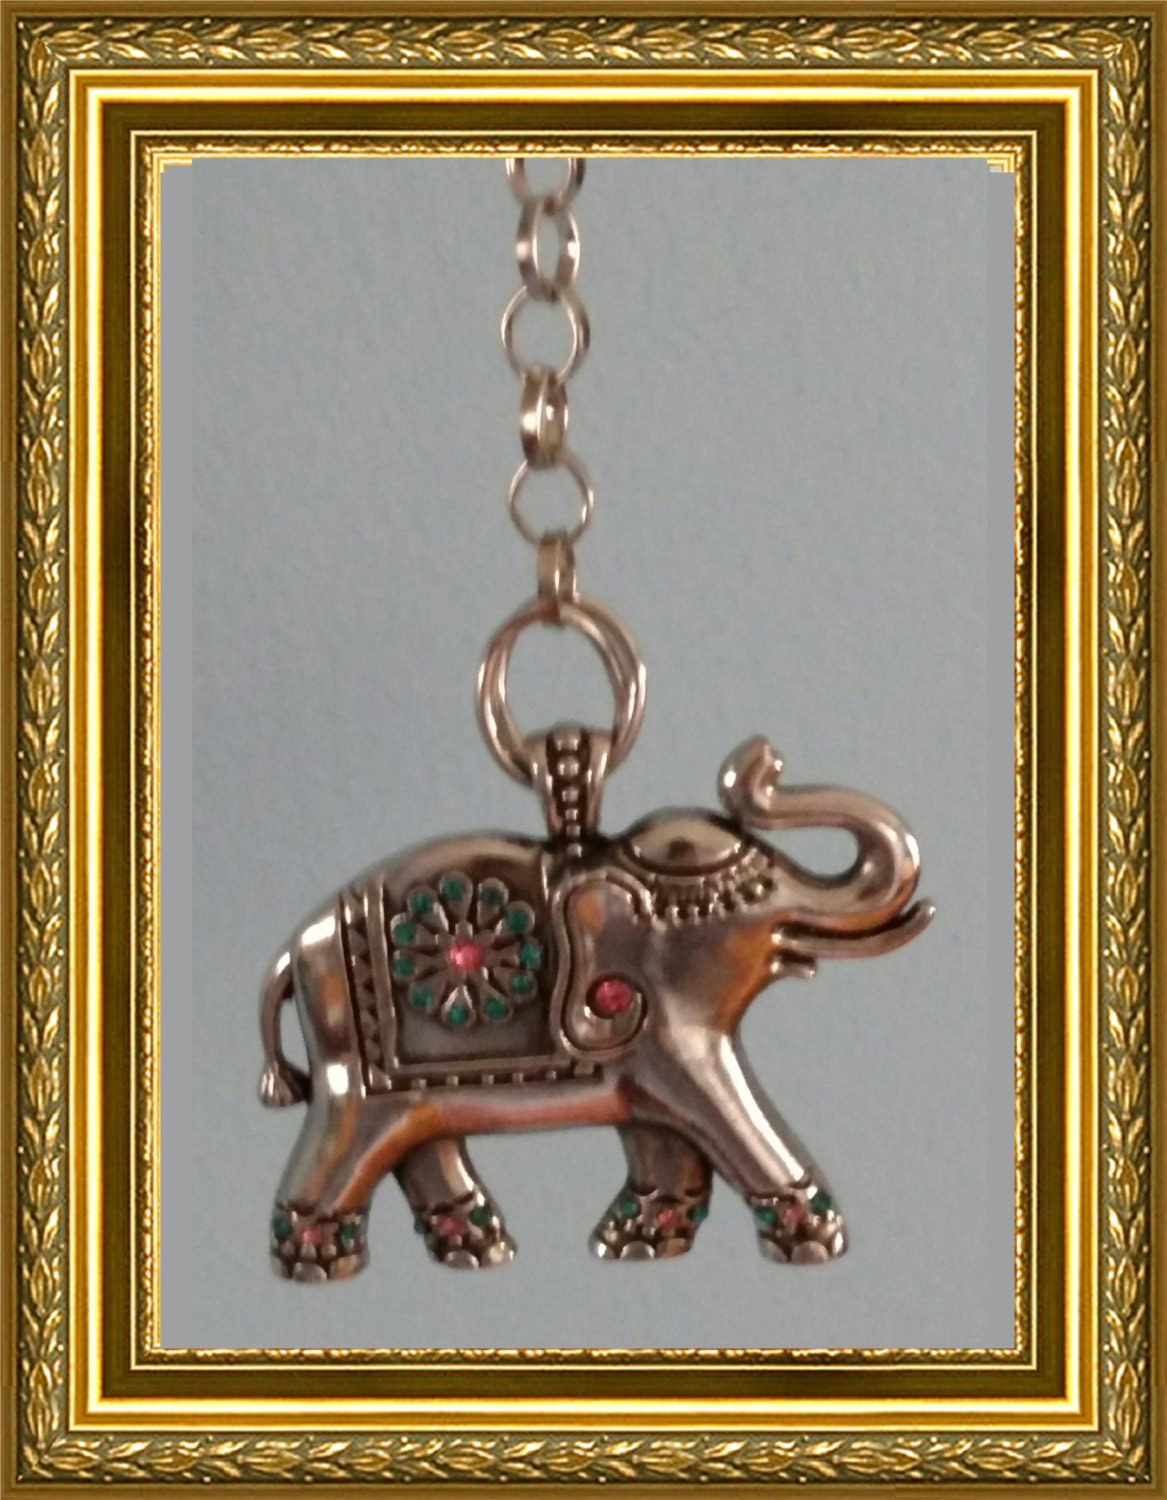 Elephant ceiling fan pull chain home decor silver link chain silver elephant Silver elephant home decor